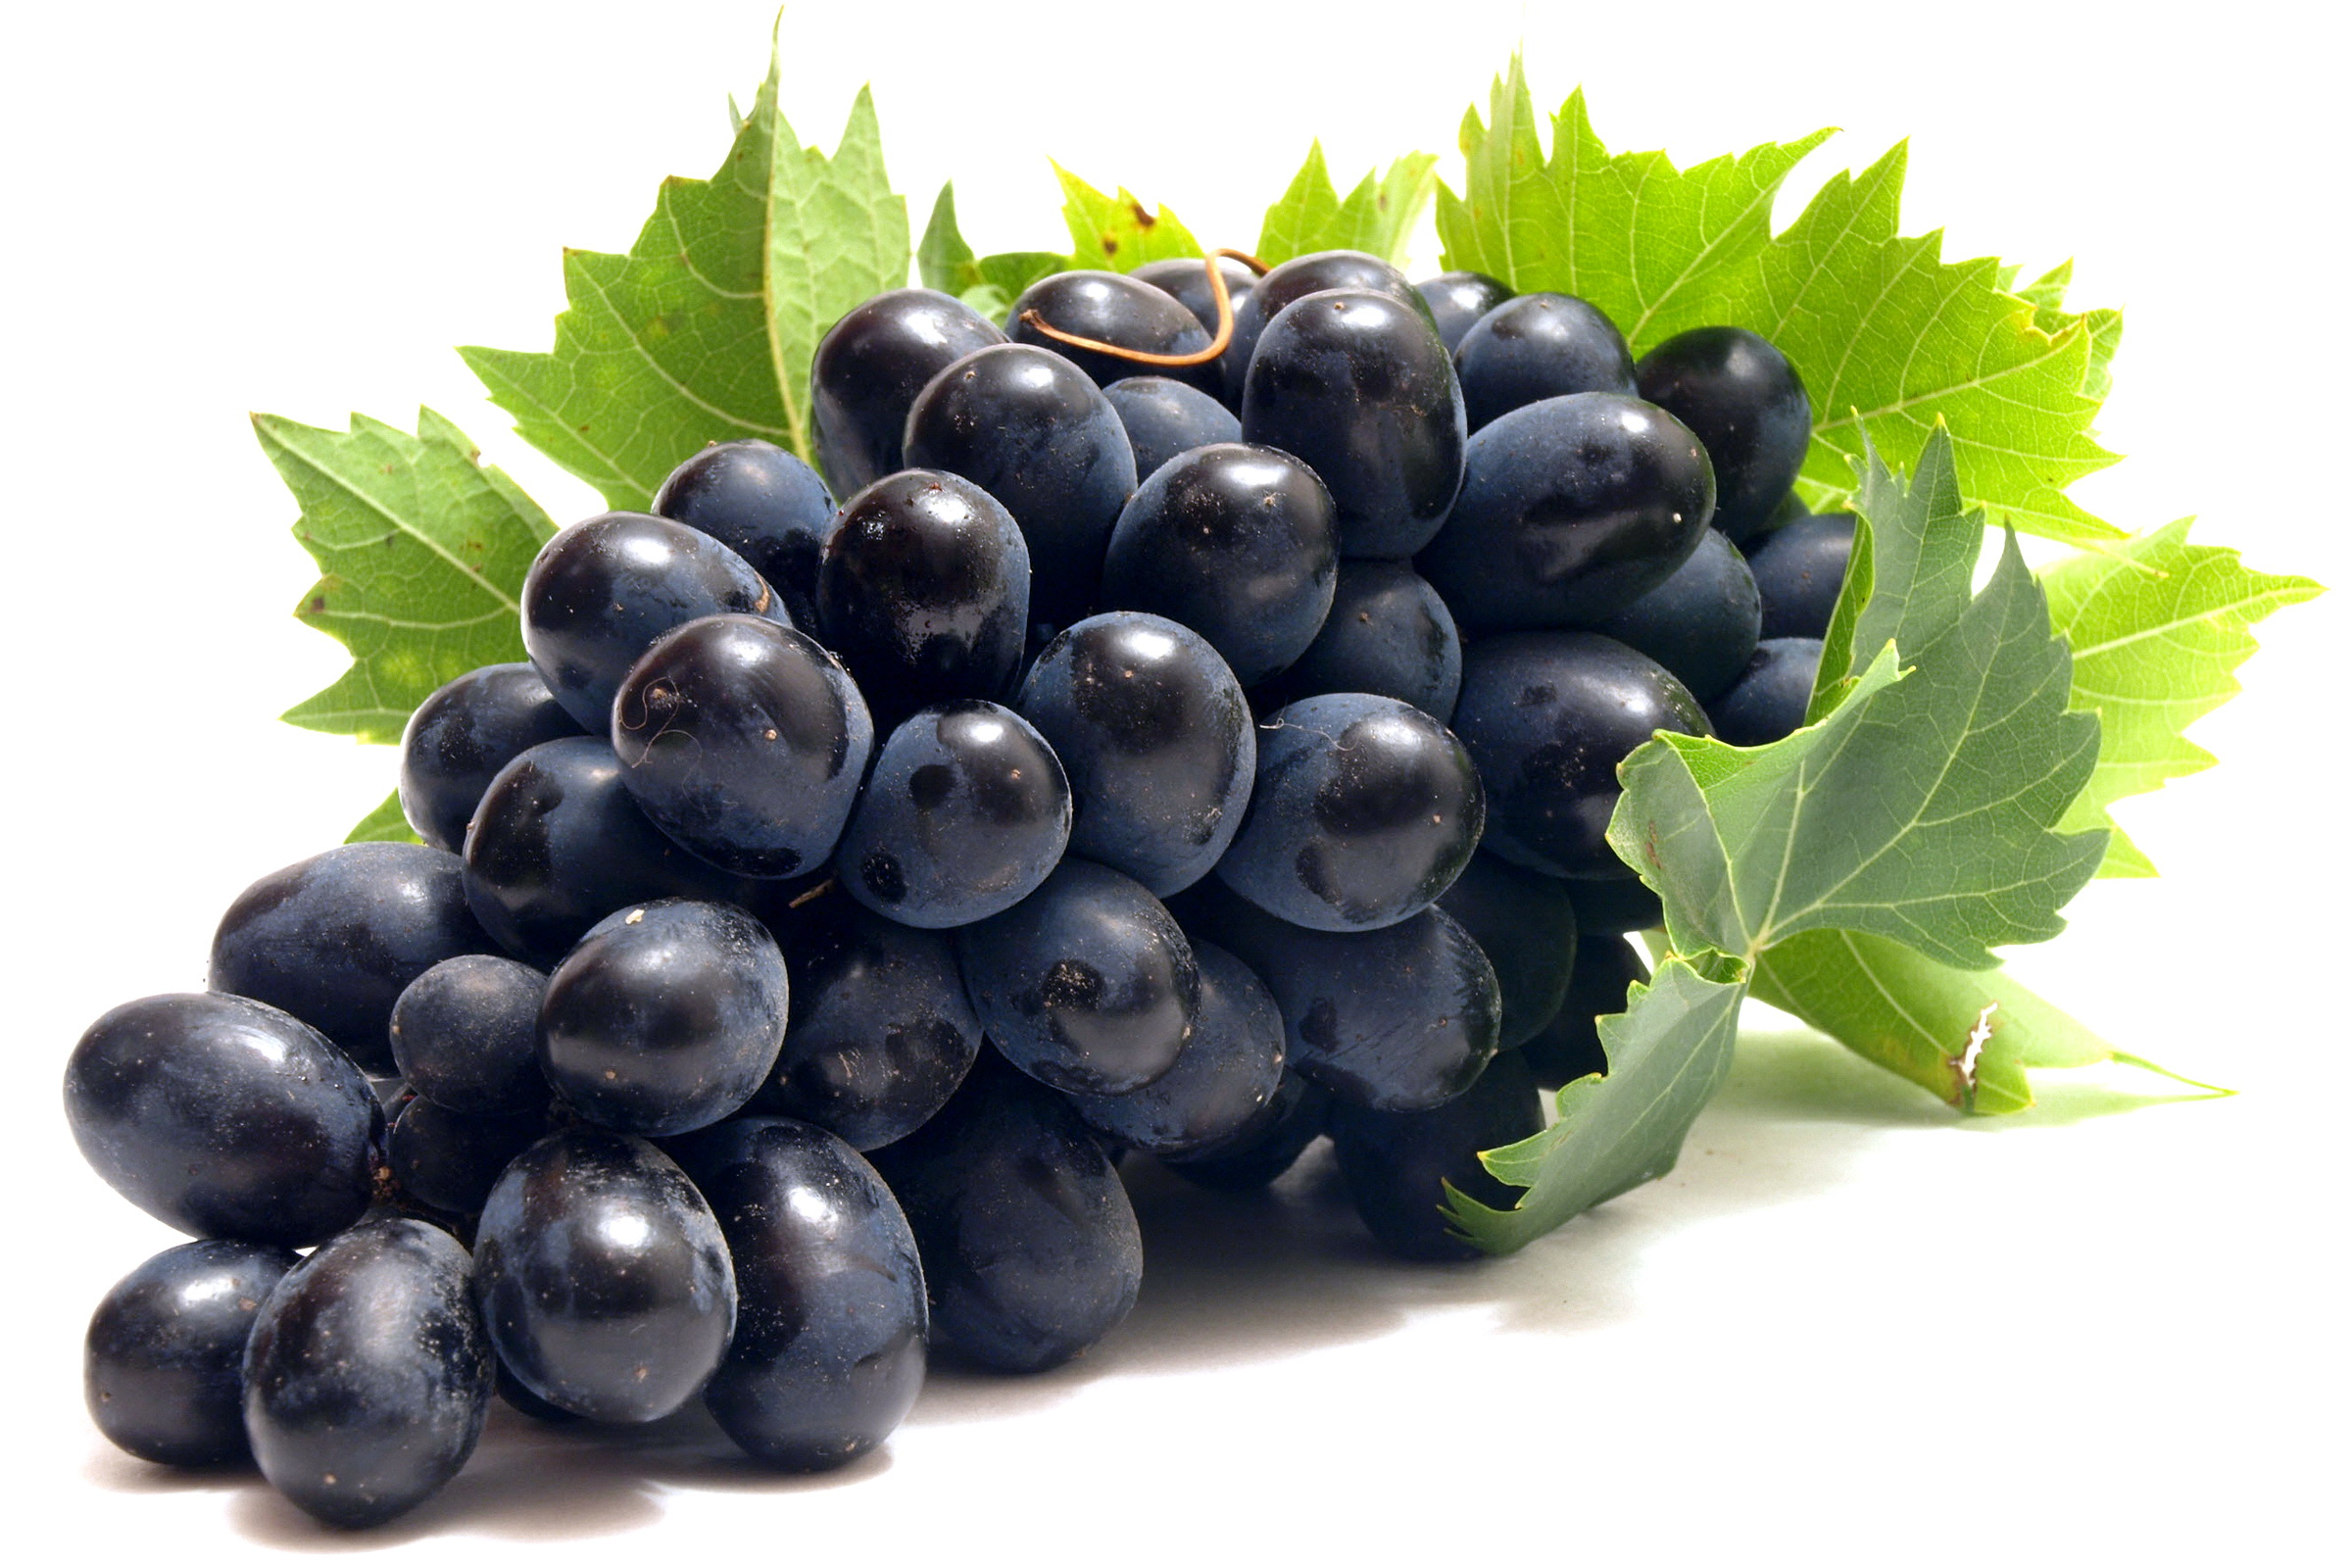 Ripe Purple Grapes 134.7 Kb